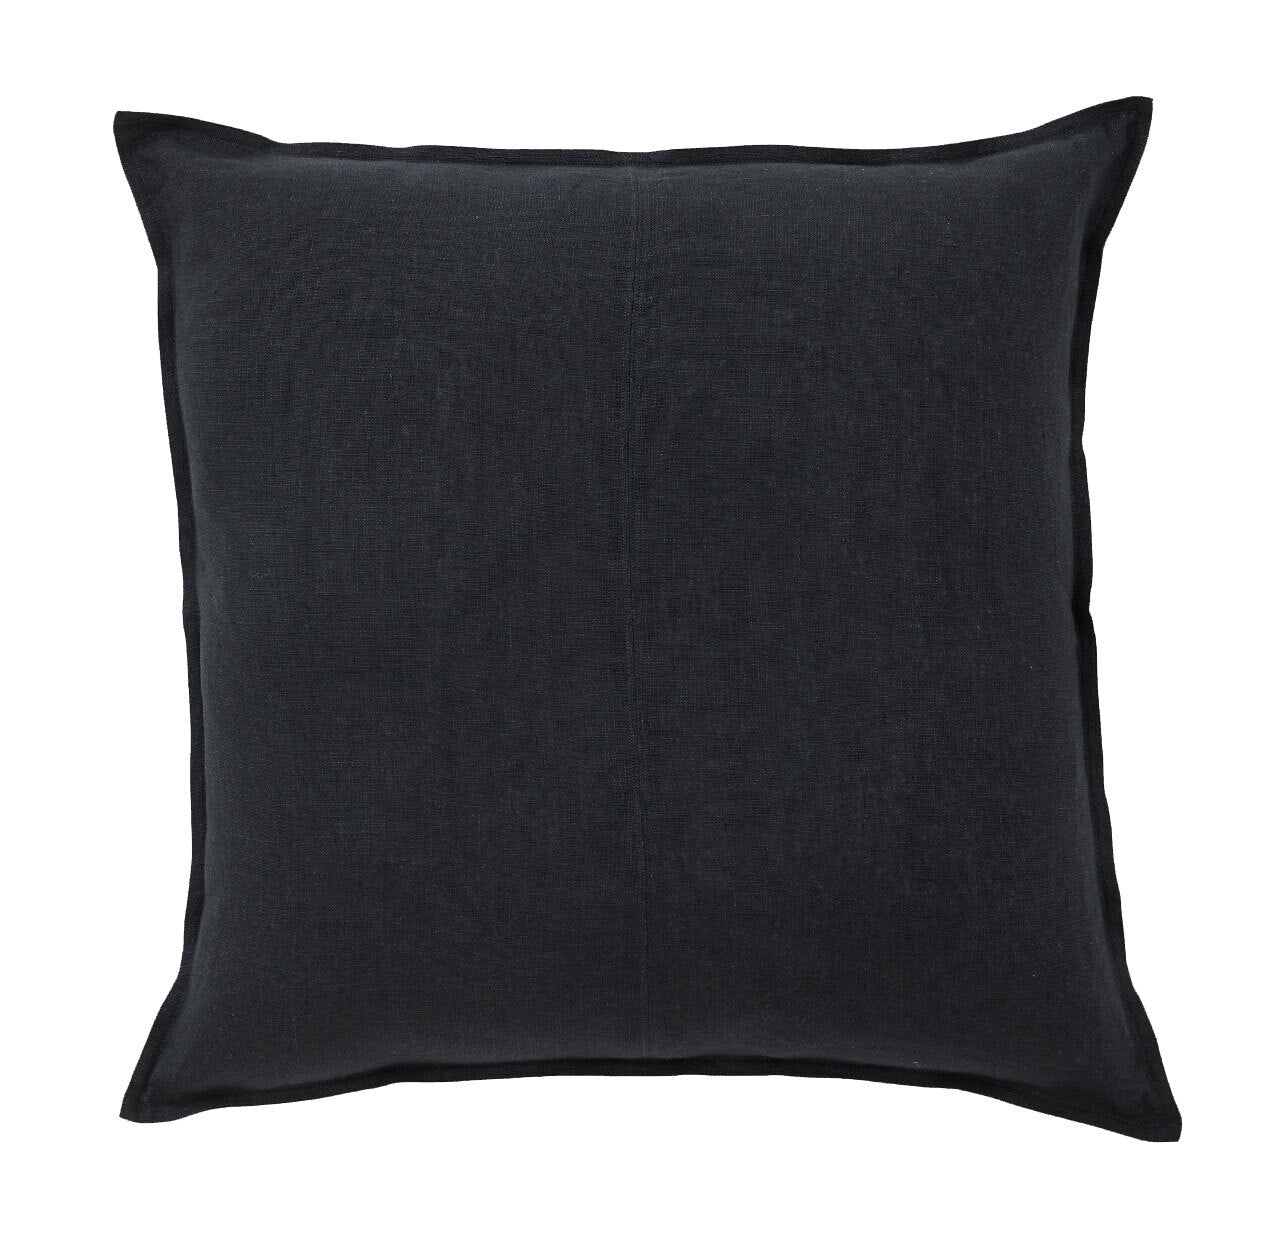 Weave Home Linen Como Cushion - Shadow (4548542857300)